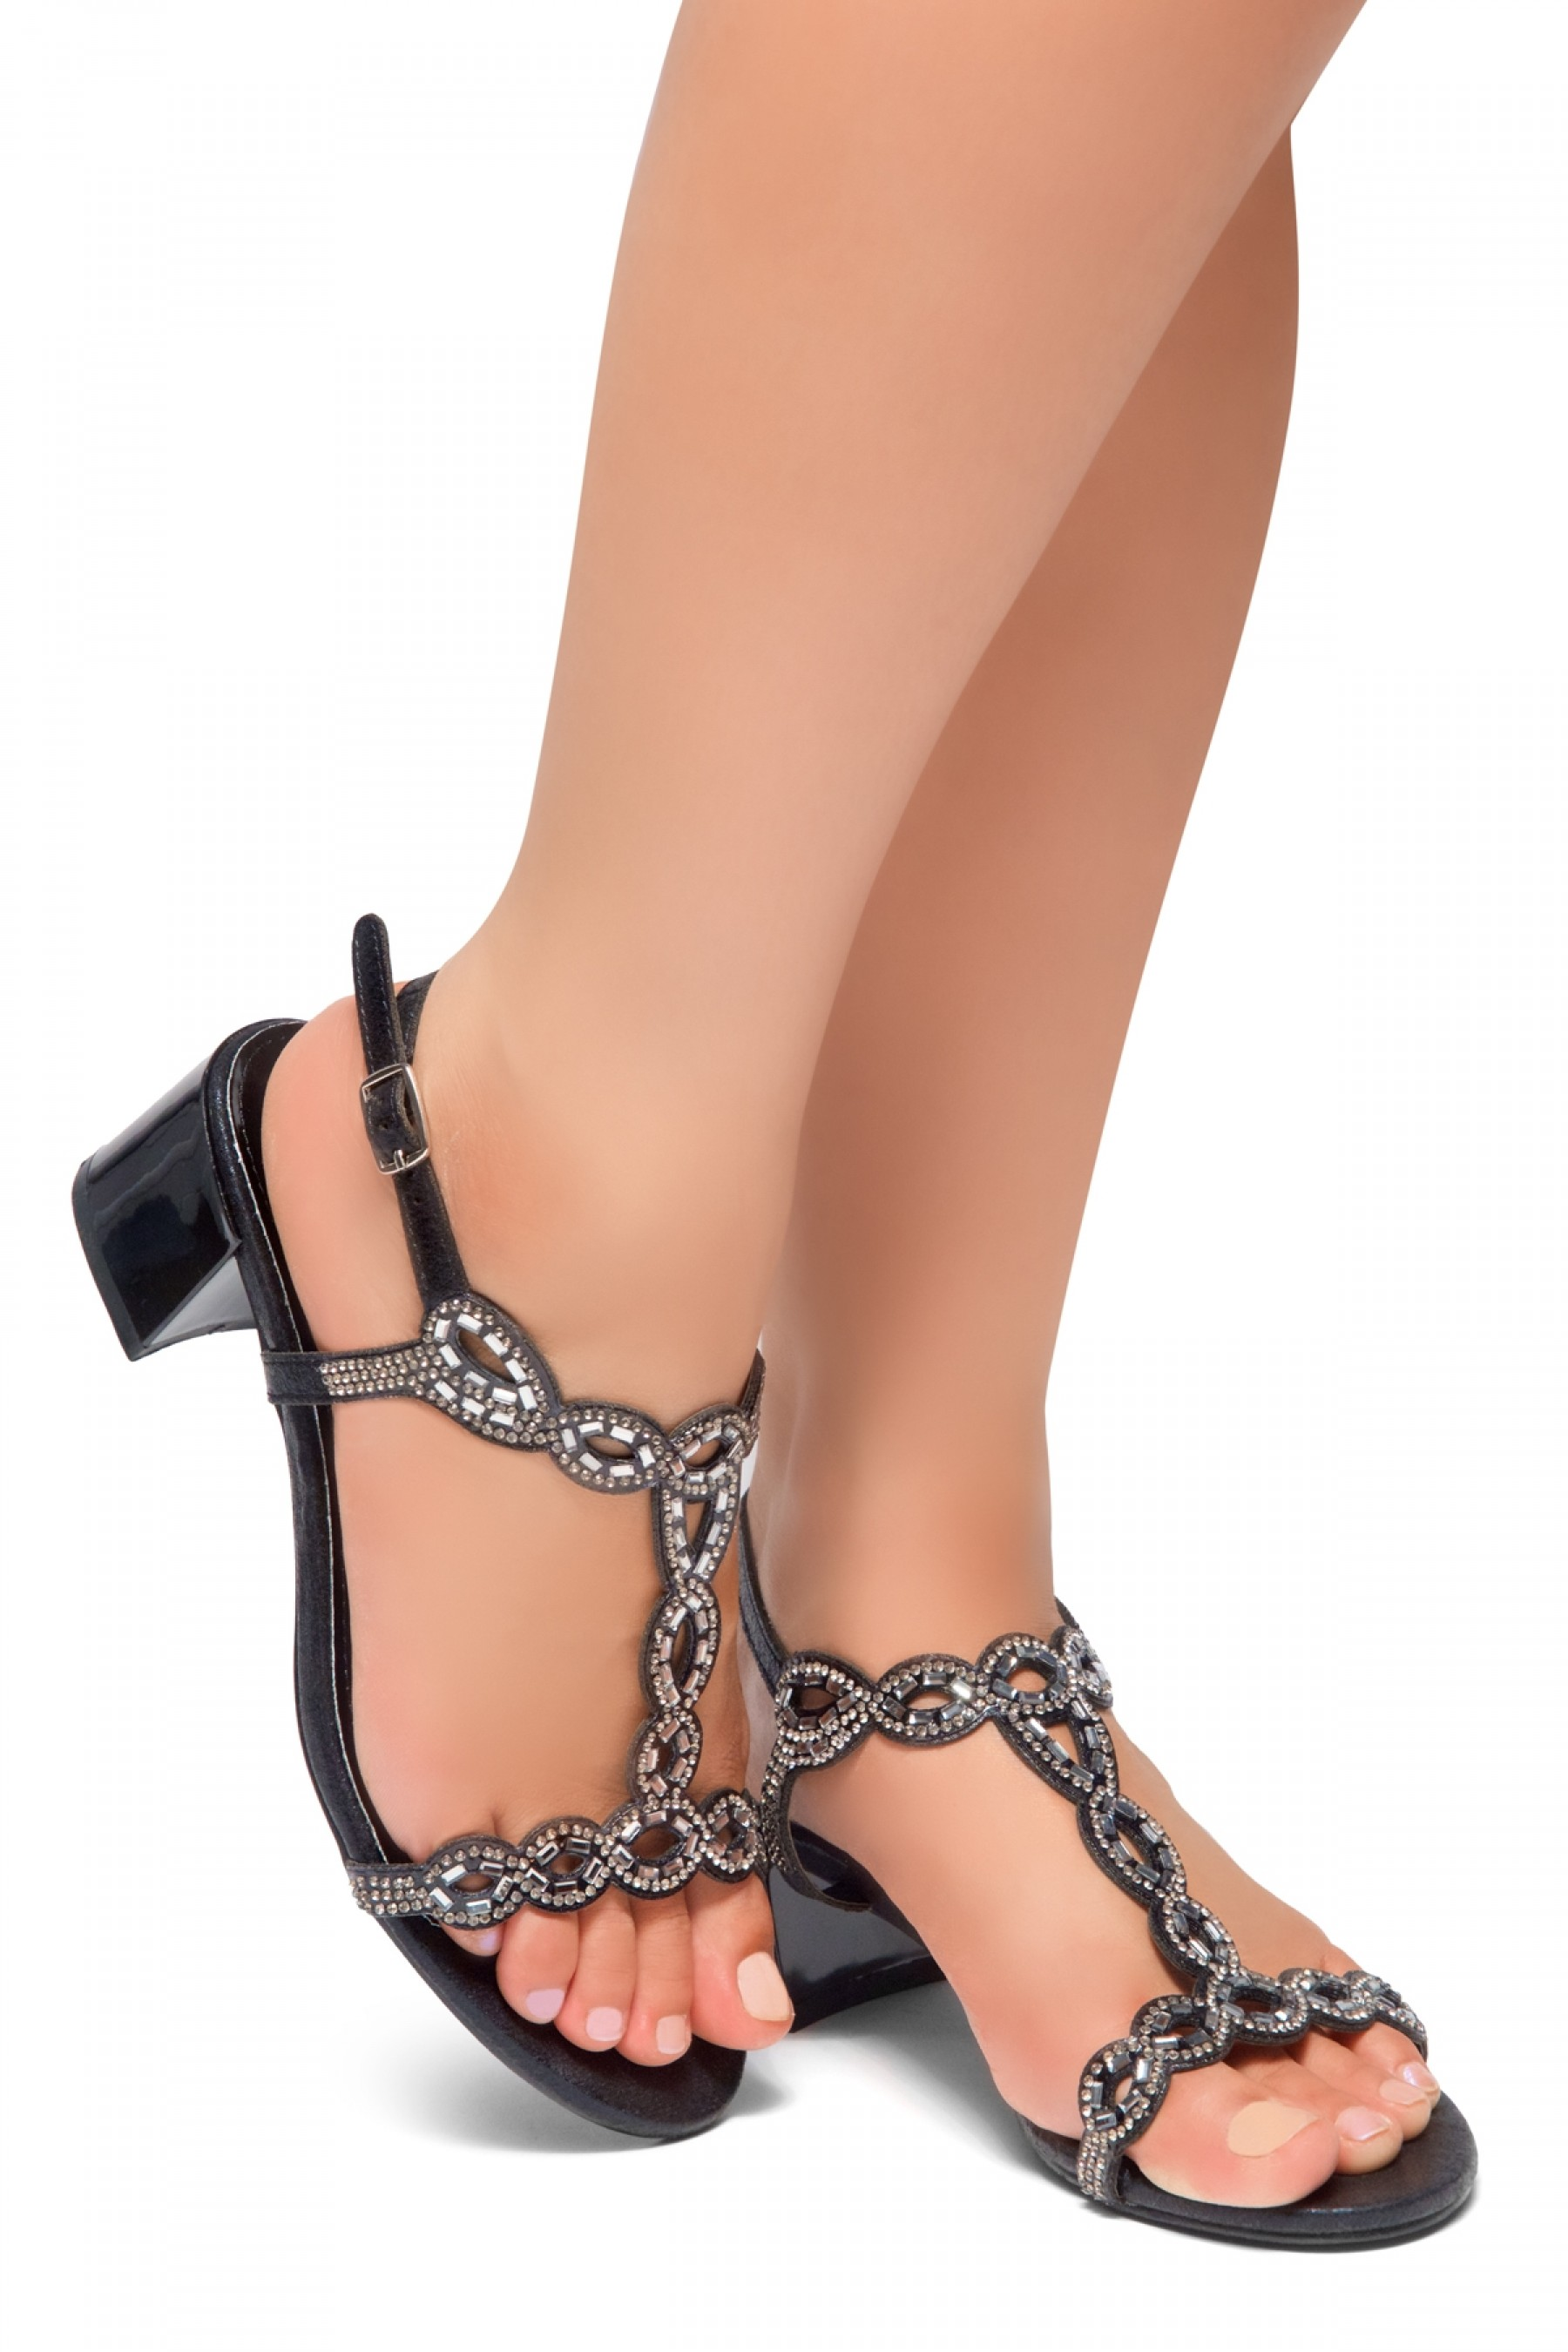 HerStyle Mastermind- Jeweled Embellishments, Low Block Heels, Open Toe, Open Back Sandals (Black)